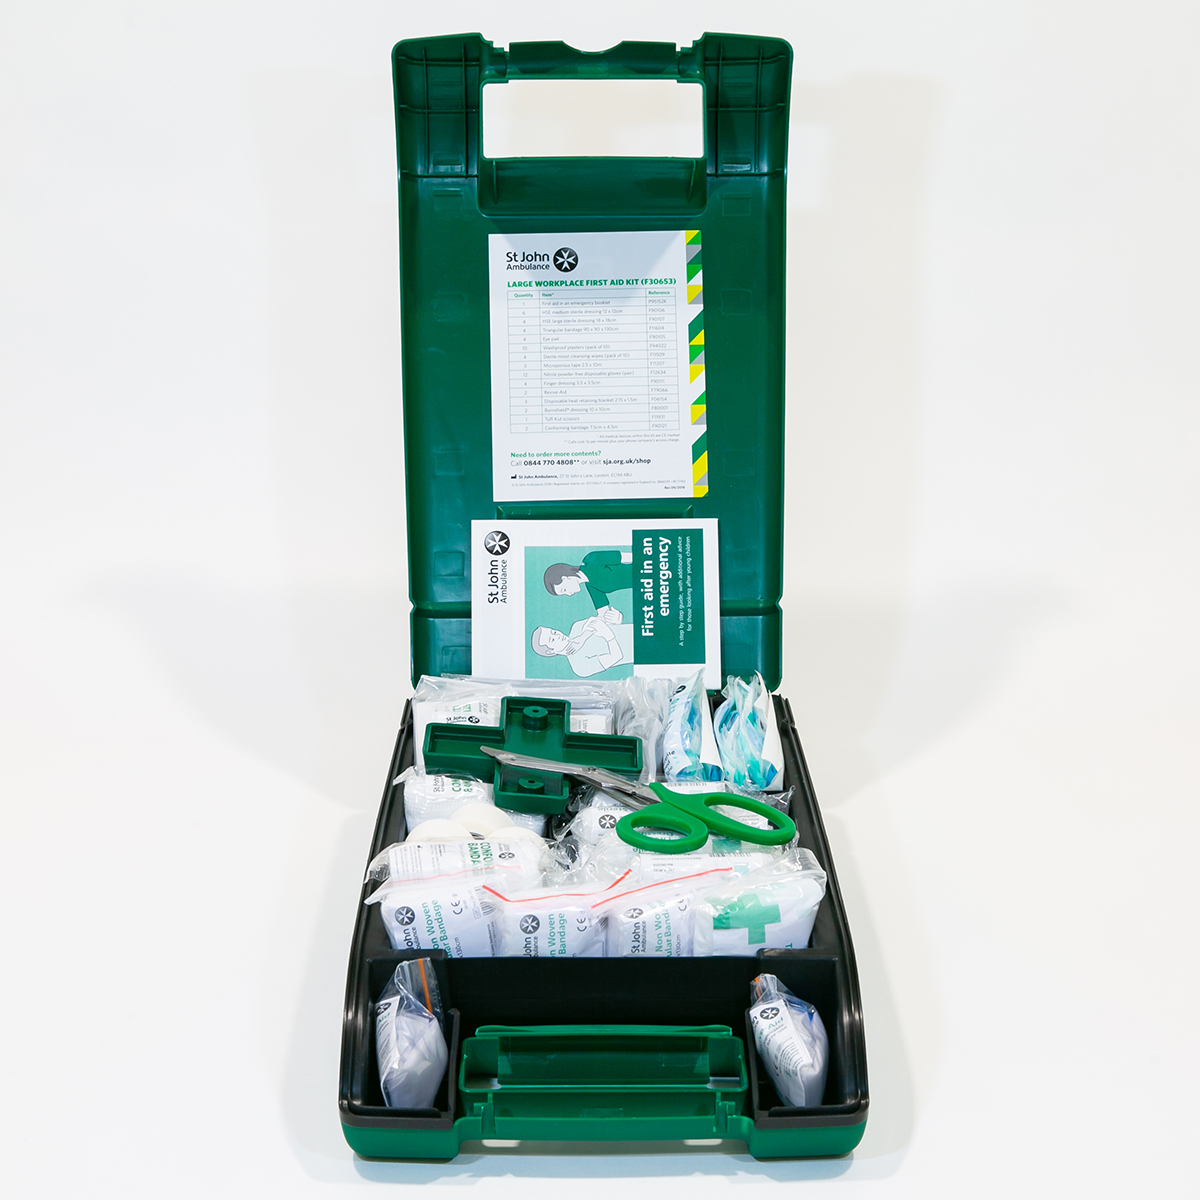 St John Ambulance Large Alpha Workplace First Aid Kit BS 8599-1:2019